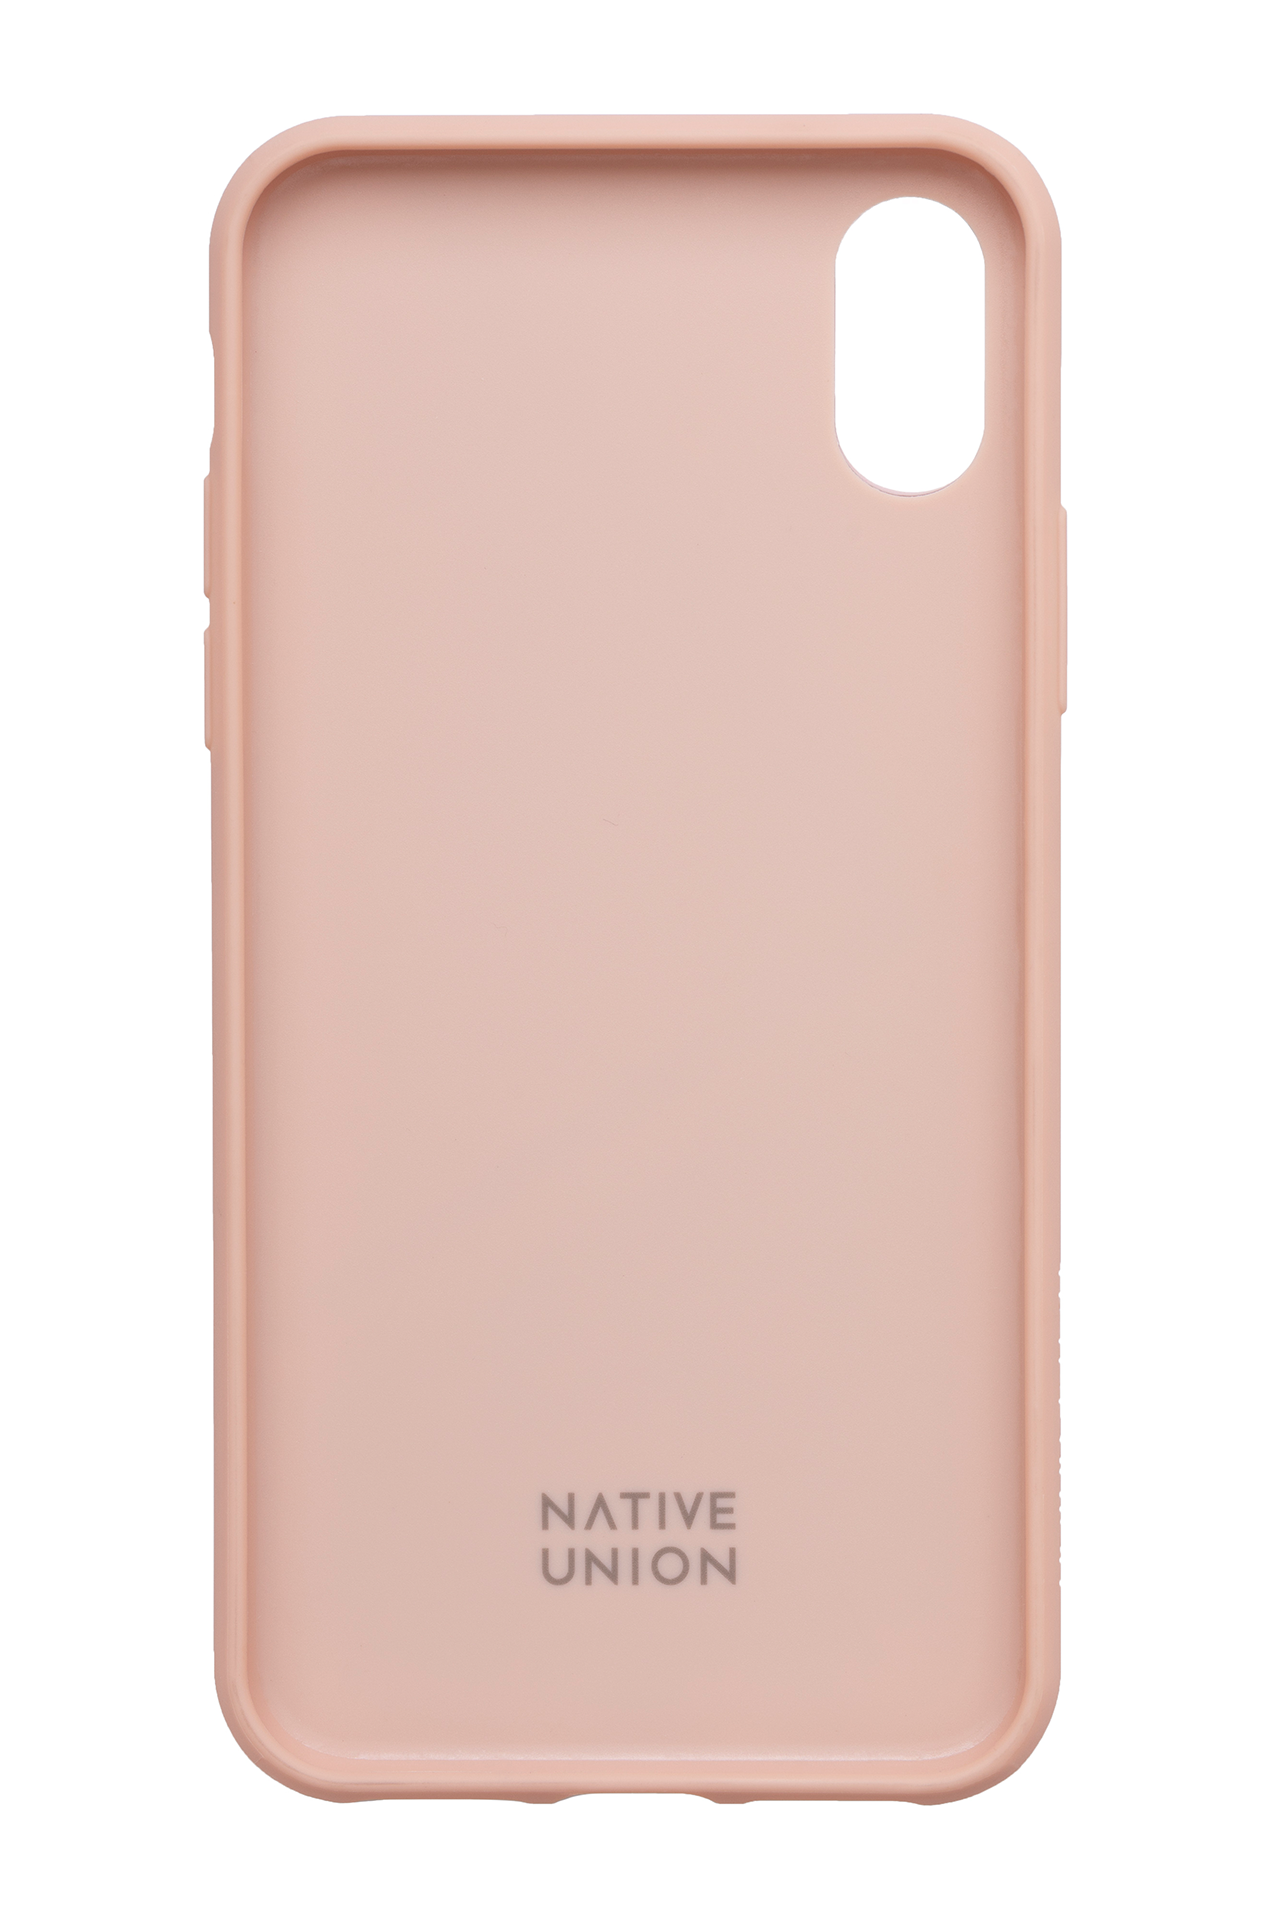 Front image of Native Union Clic Card XS Iphone Case Rose iPhone removed